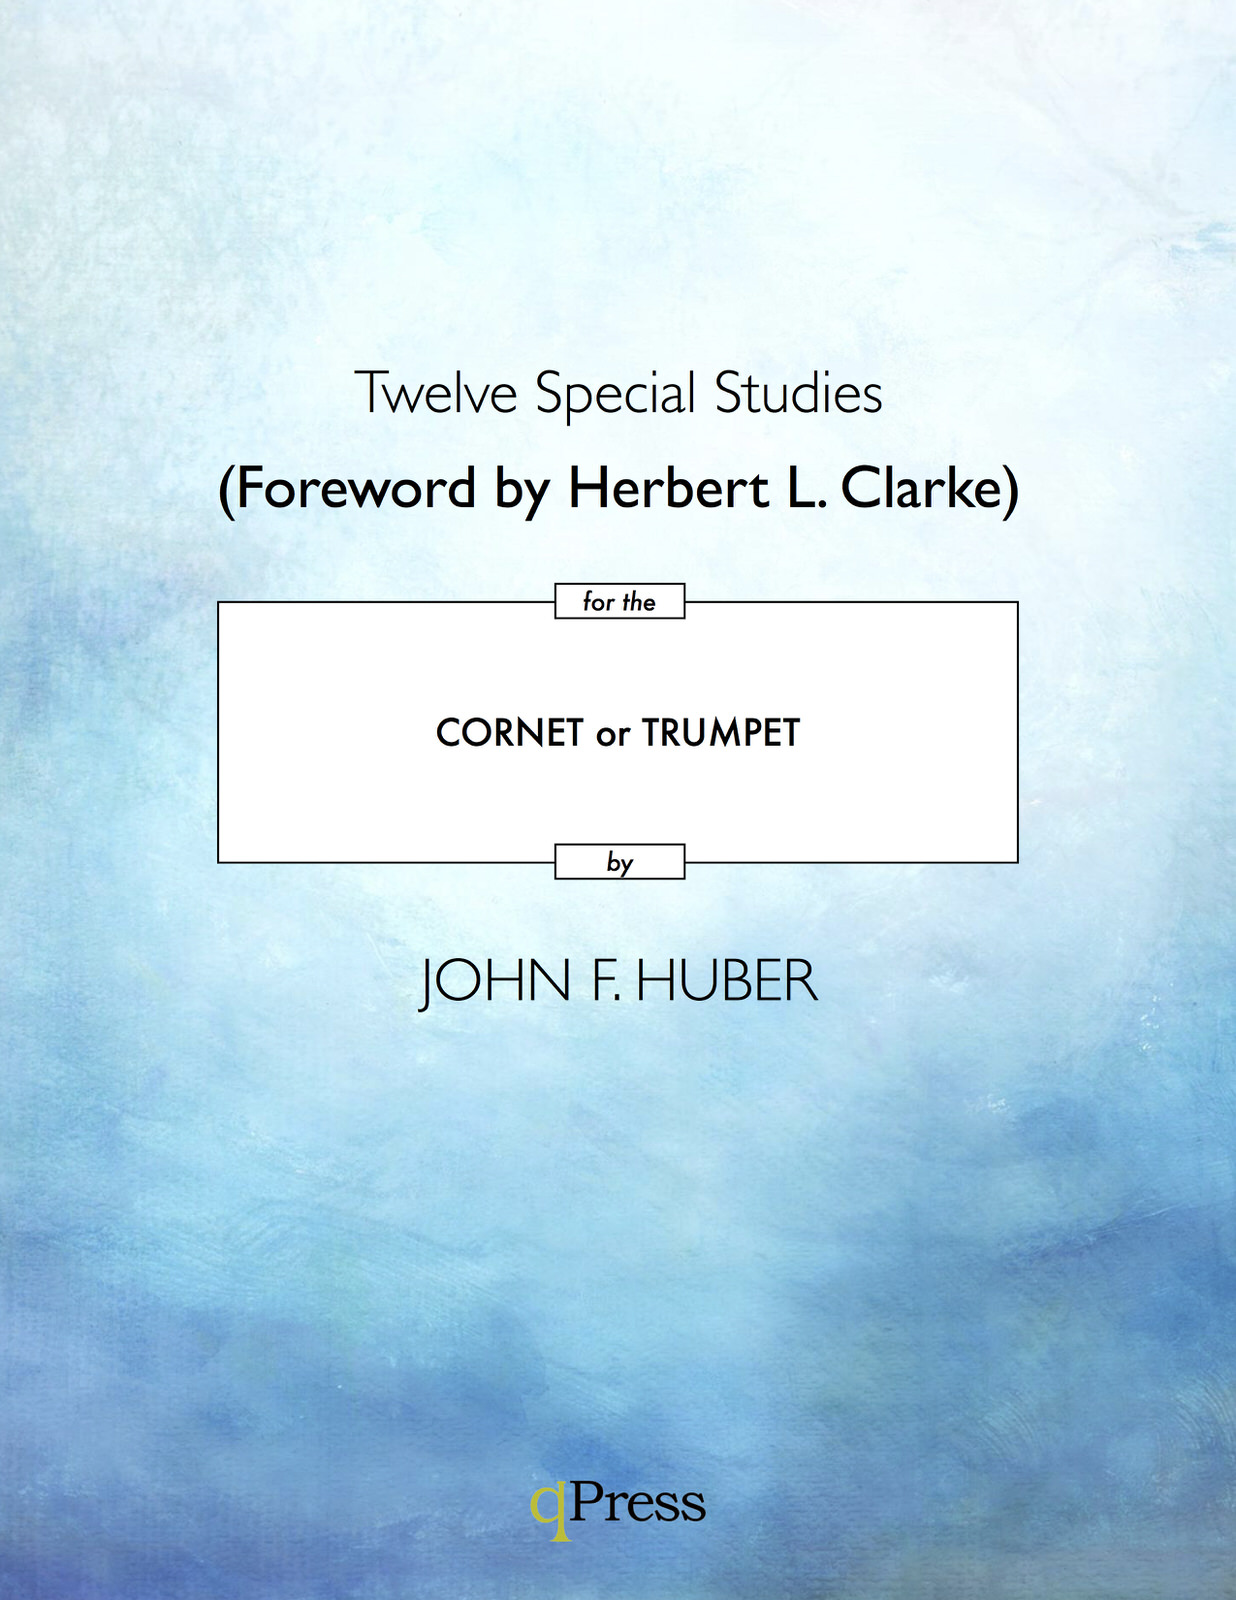 12 Special Studies for the Cornet or Trumpet